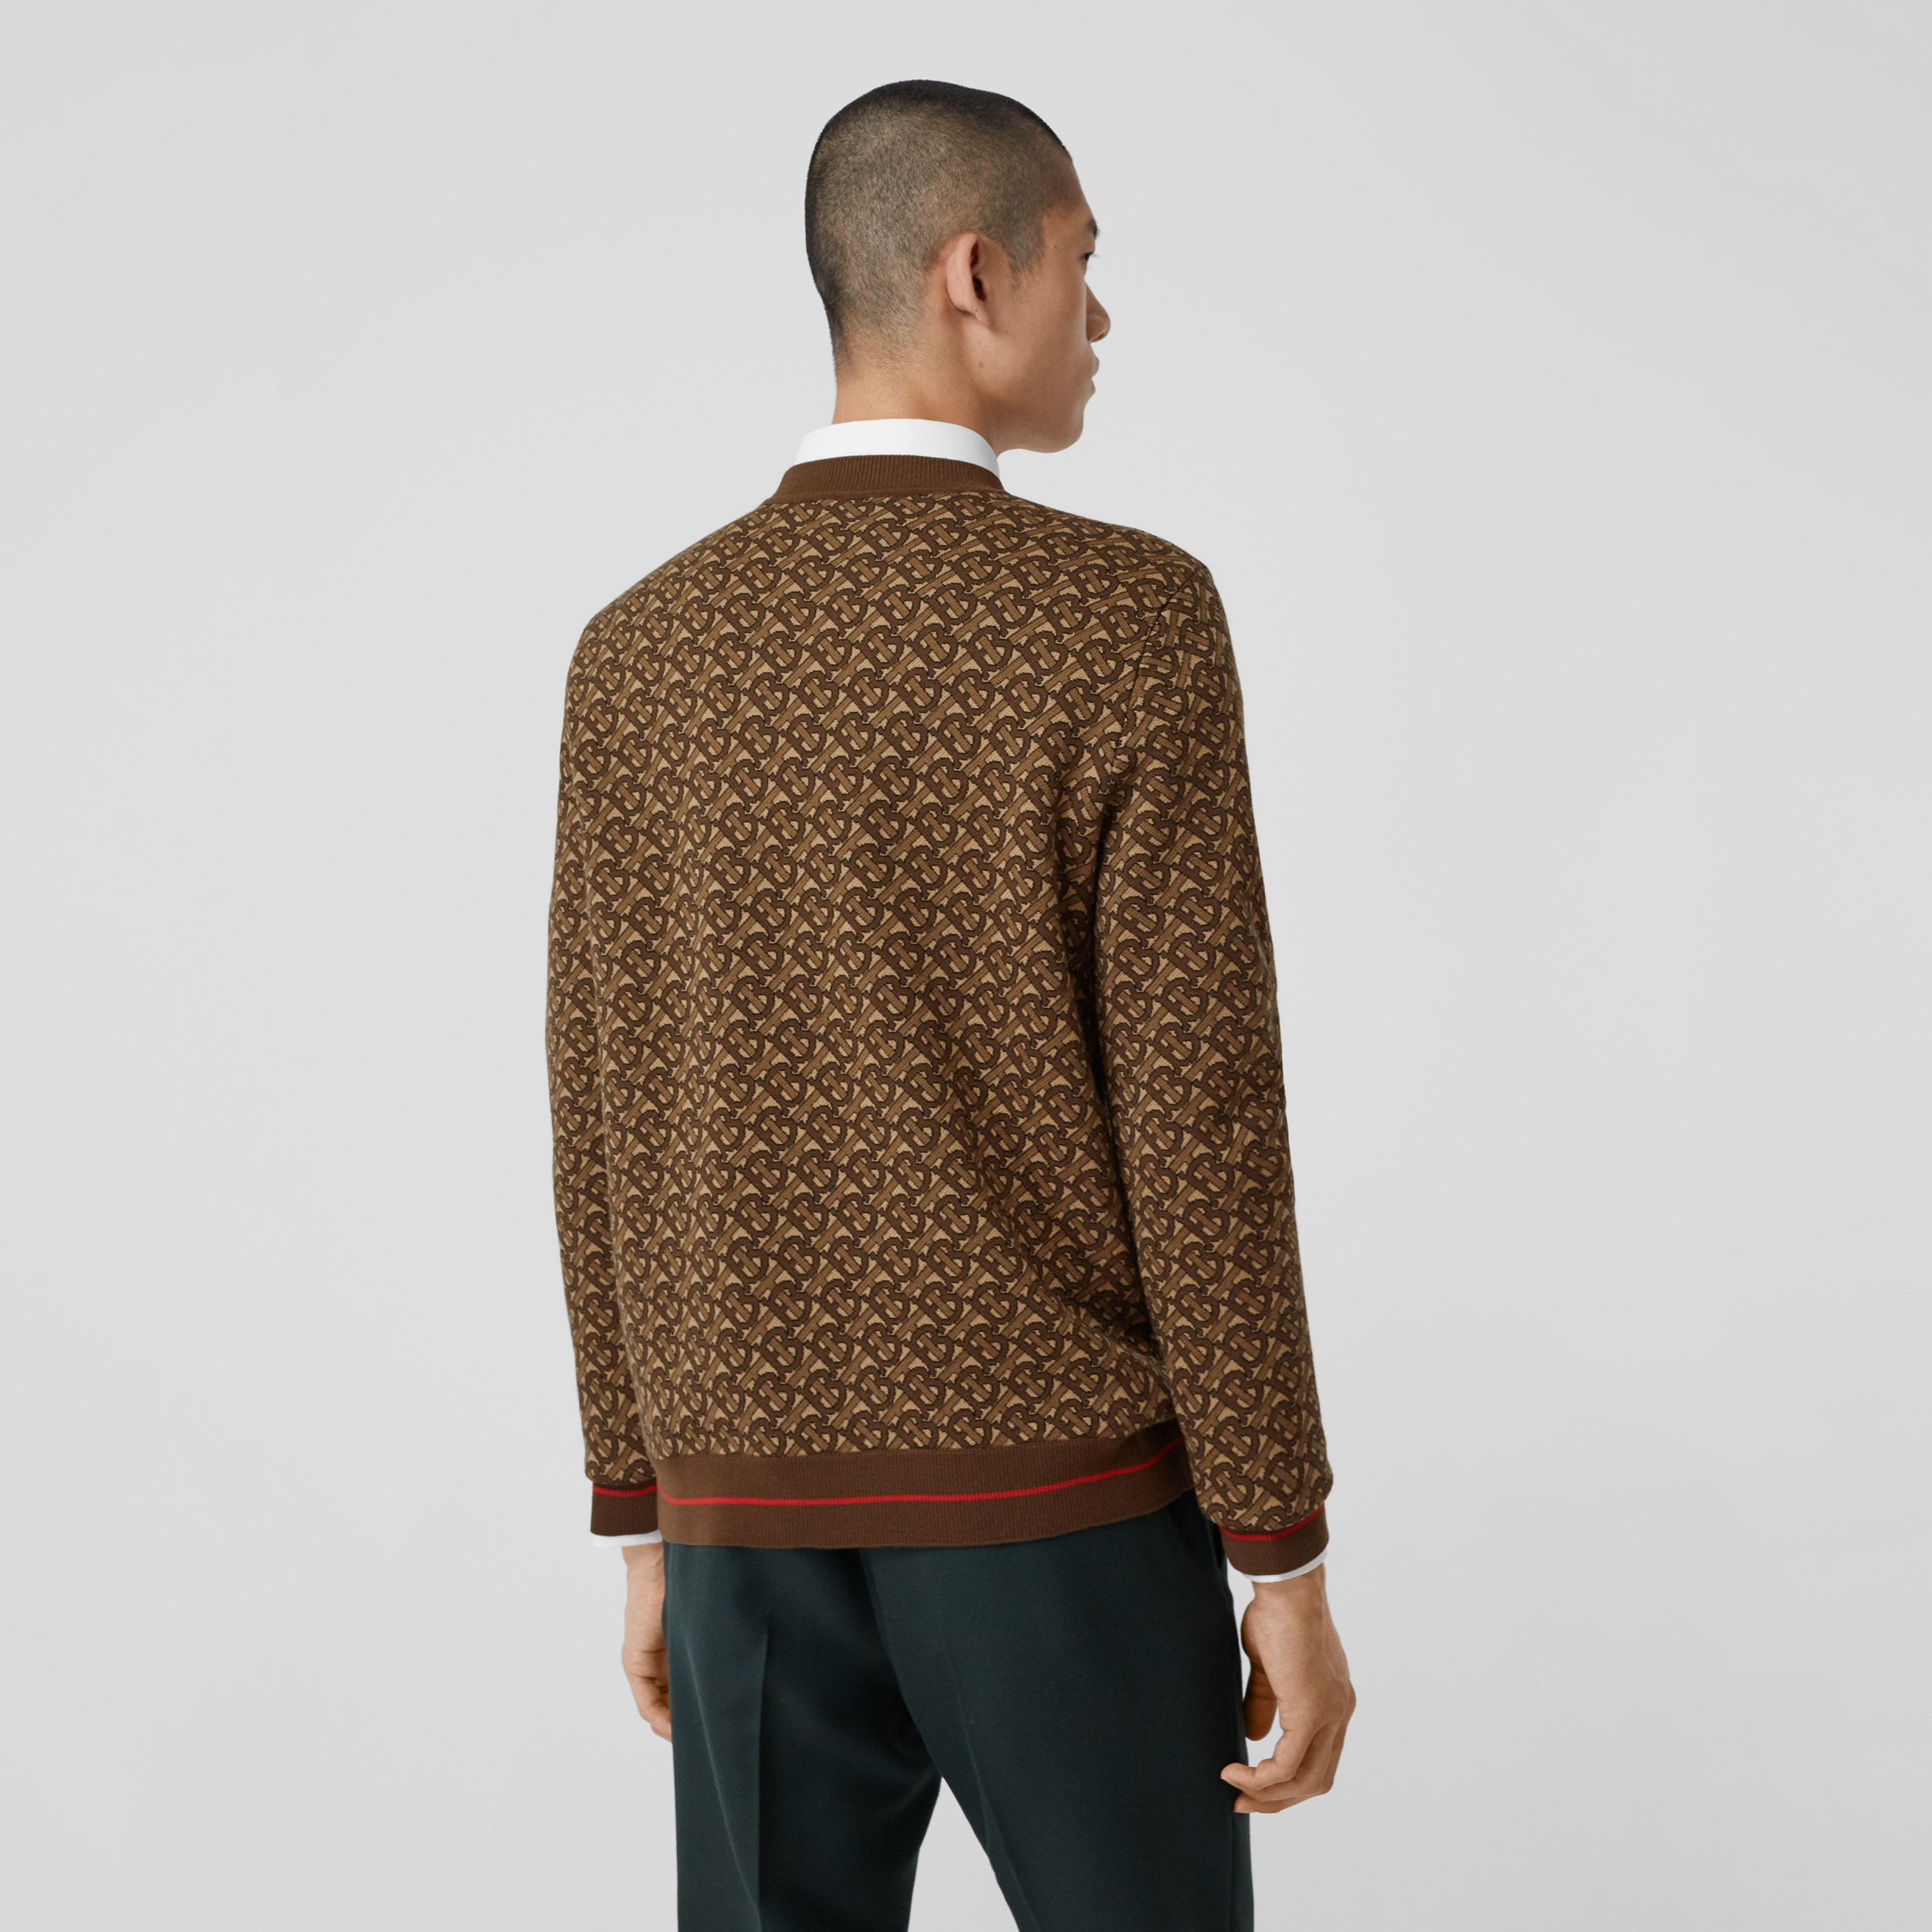 Monogram Merino Wool Jacquard Sweater in Bridle Brown - Men | Burberry Hong Kong S.A.R. - 3